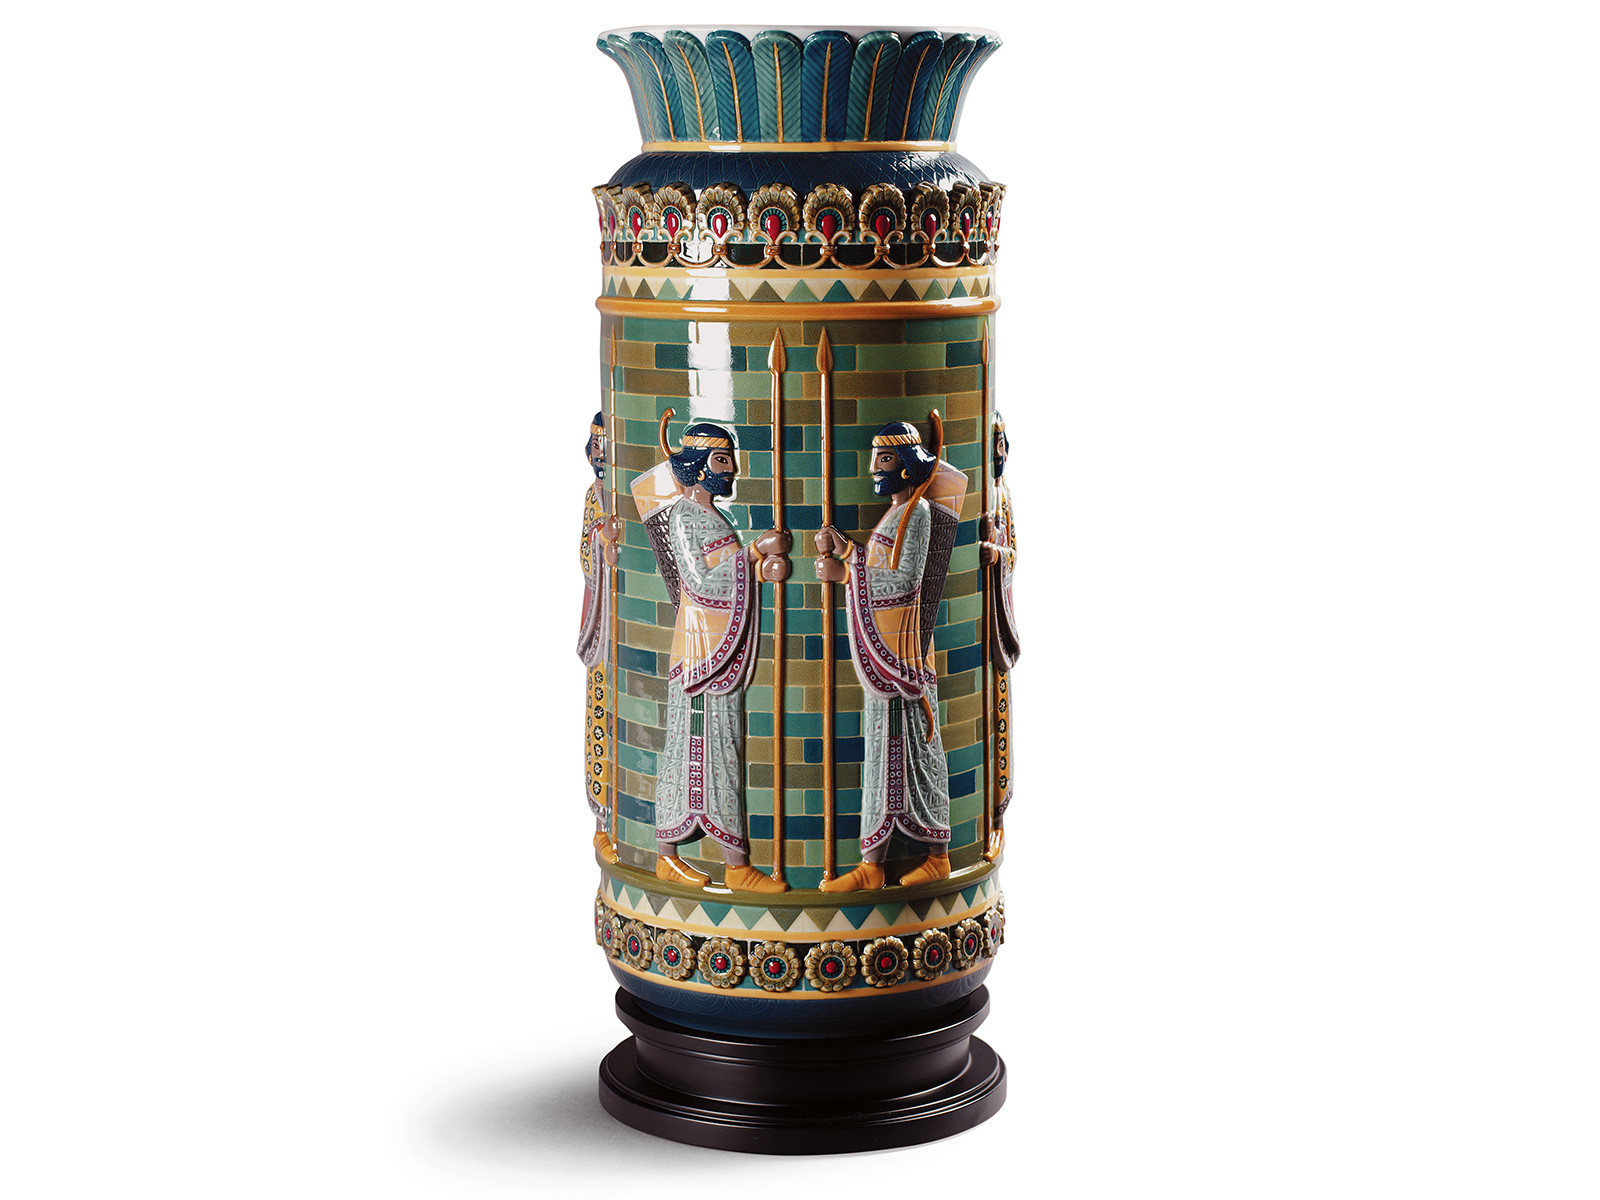 lladro bird scene vase of lladro limited editions the chinaman with regard to lladro archers frieze vase